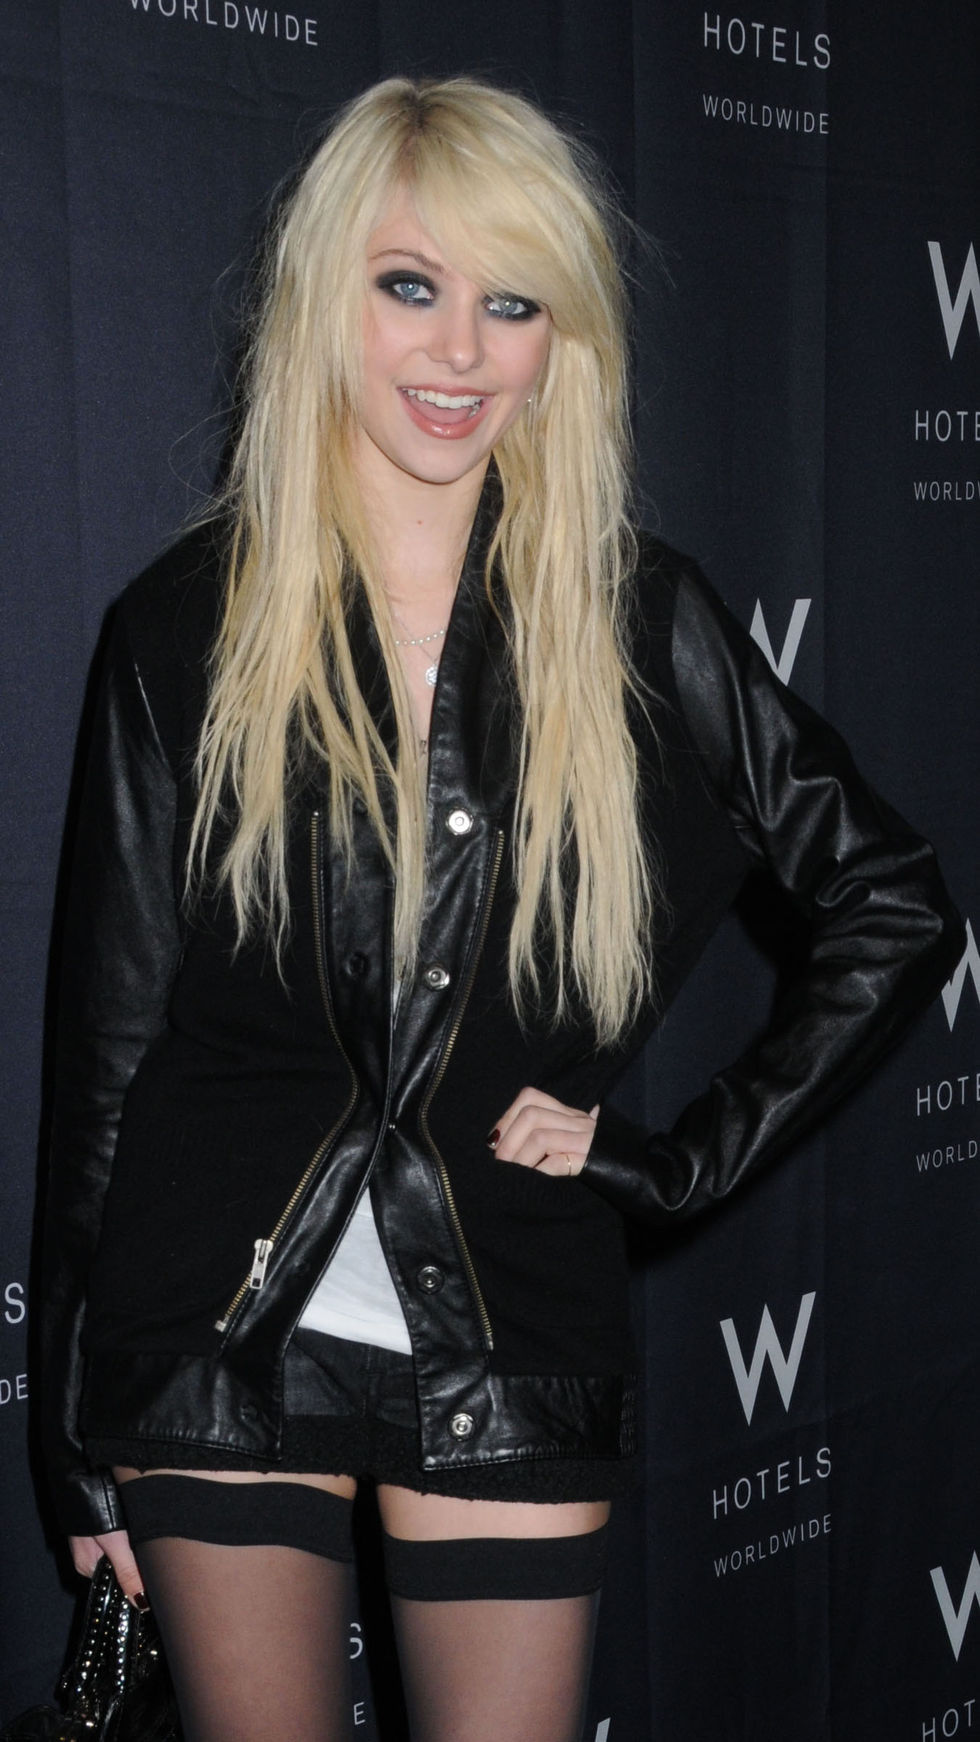 taylor-momsen-at-fashion-week-spring-2010-in-new-york-01